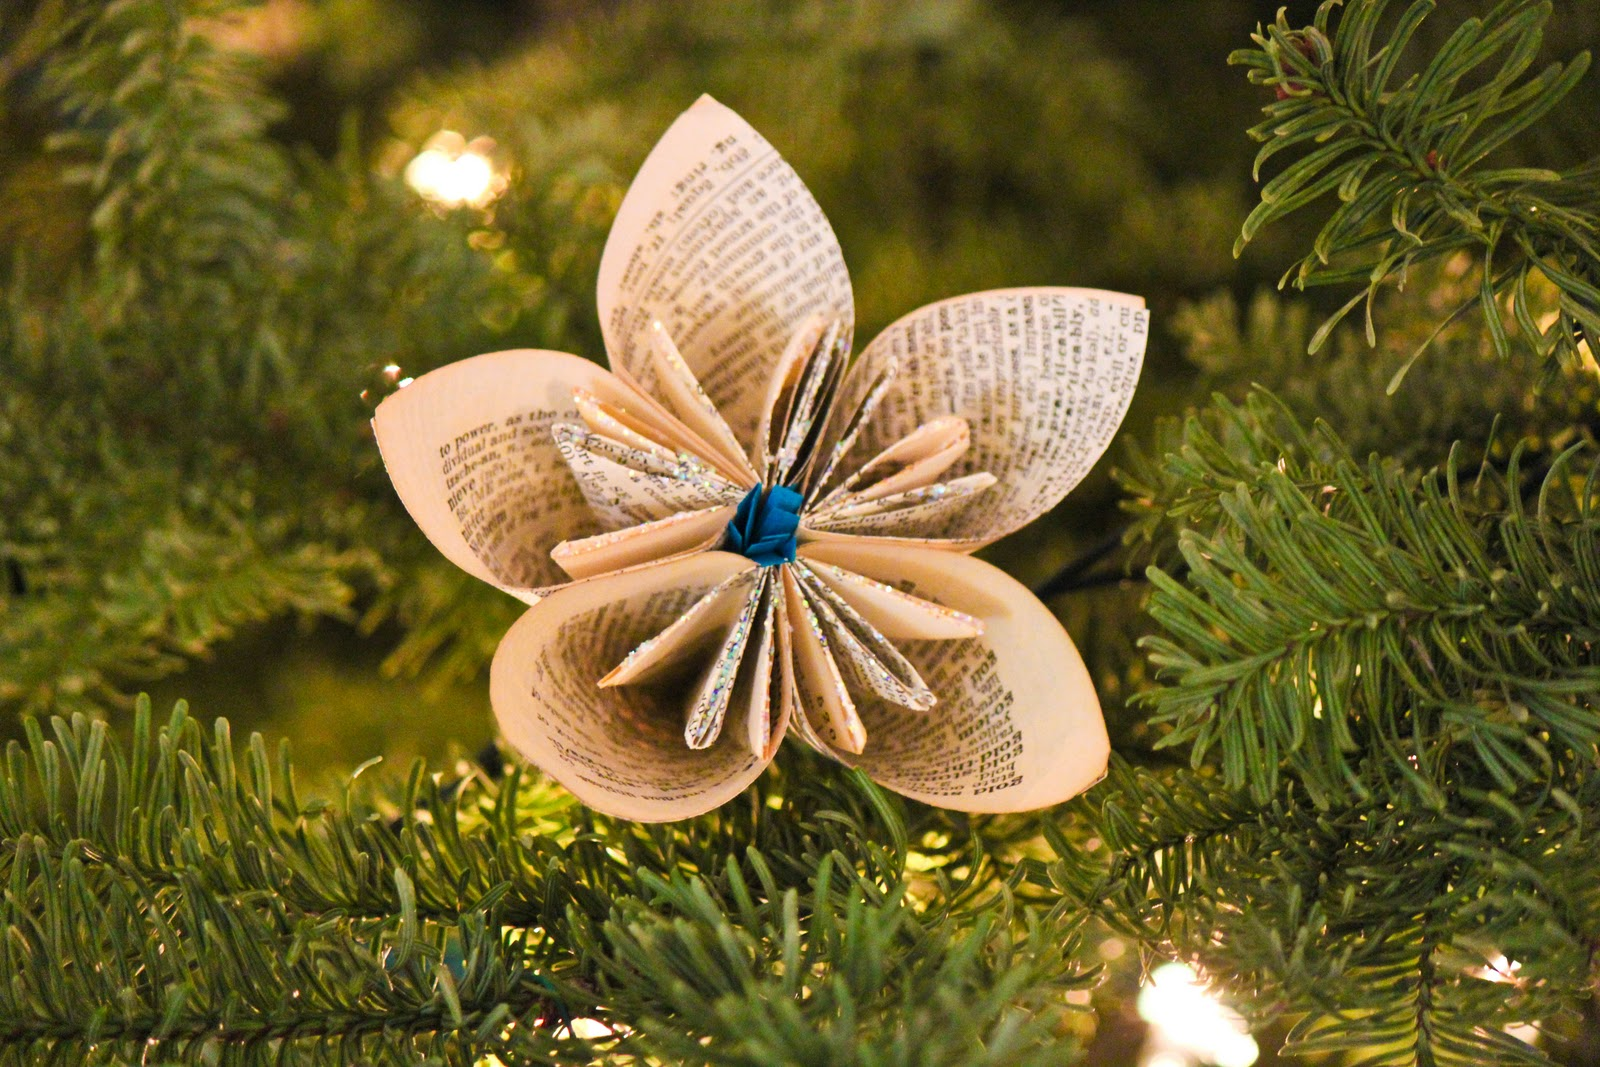 For diy vintage dictionary flower ornaments via the following link